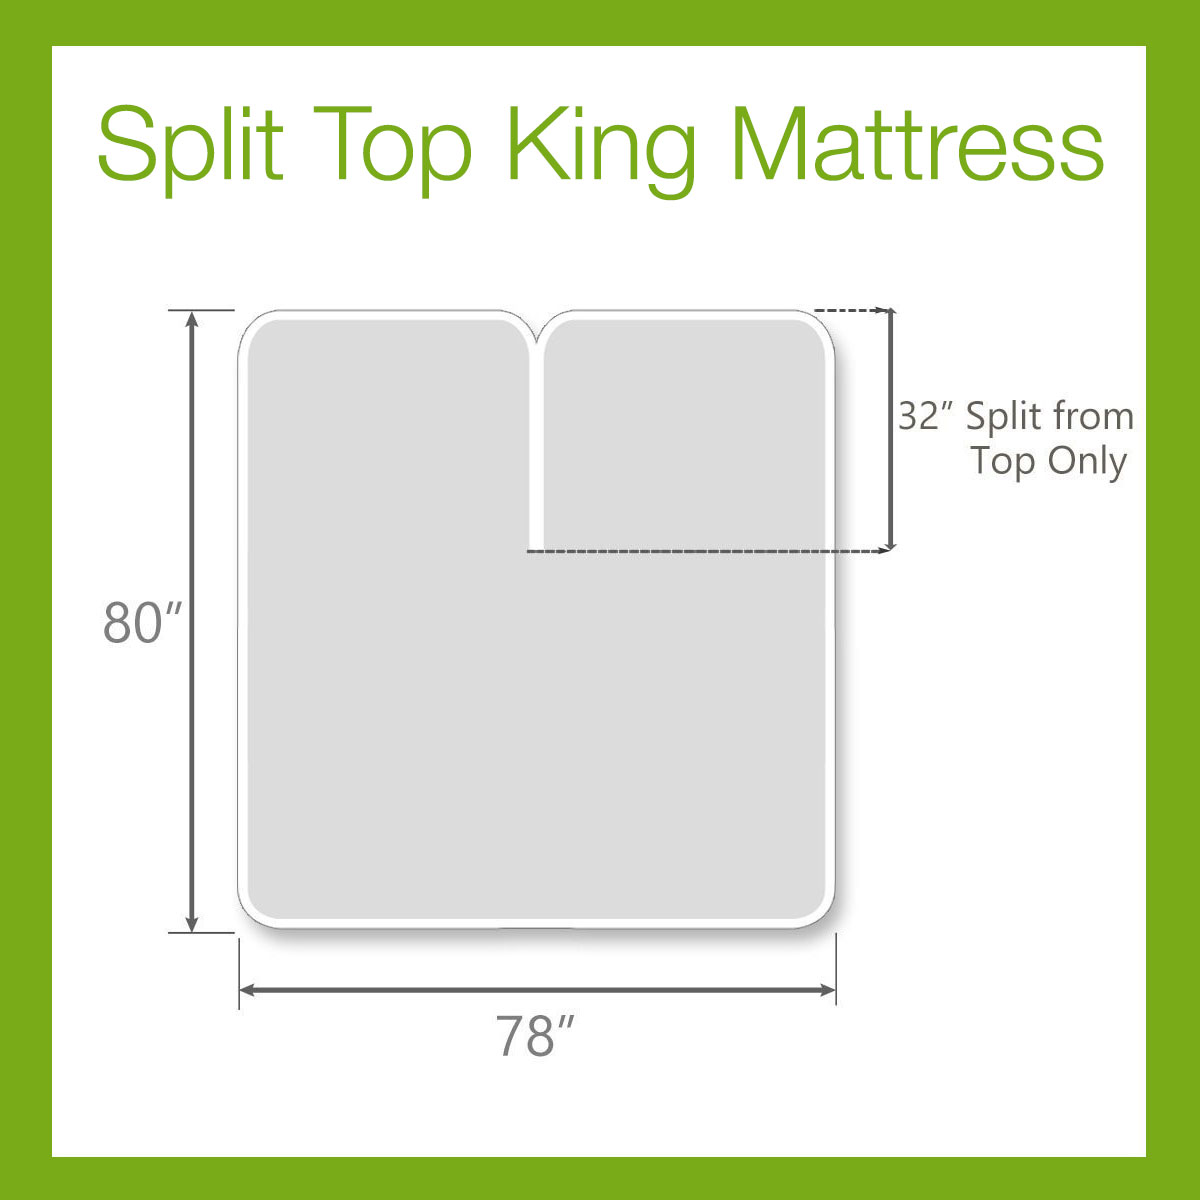 split-top-king-mattress-diag.jpg